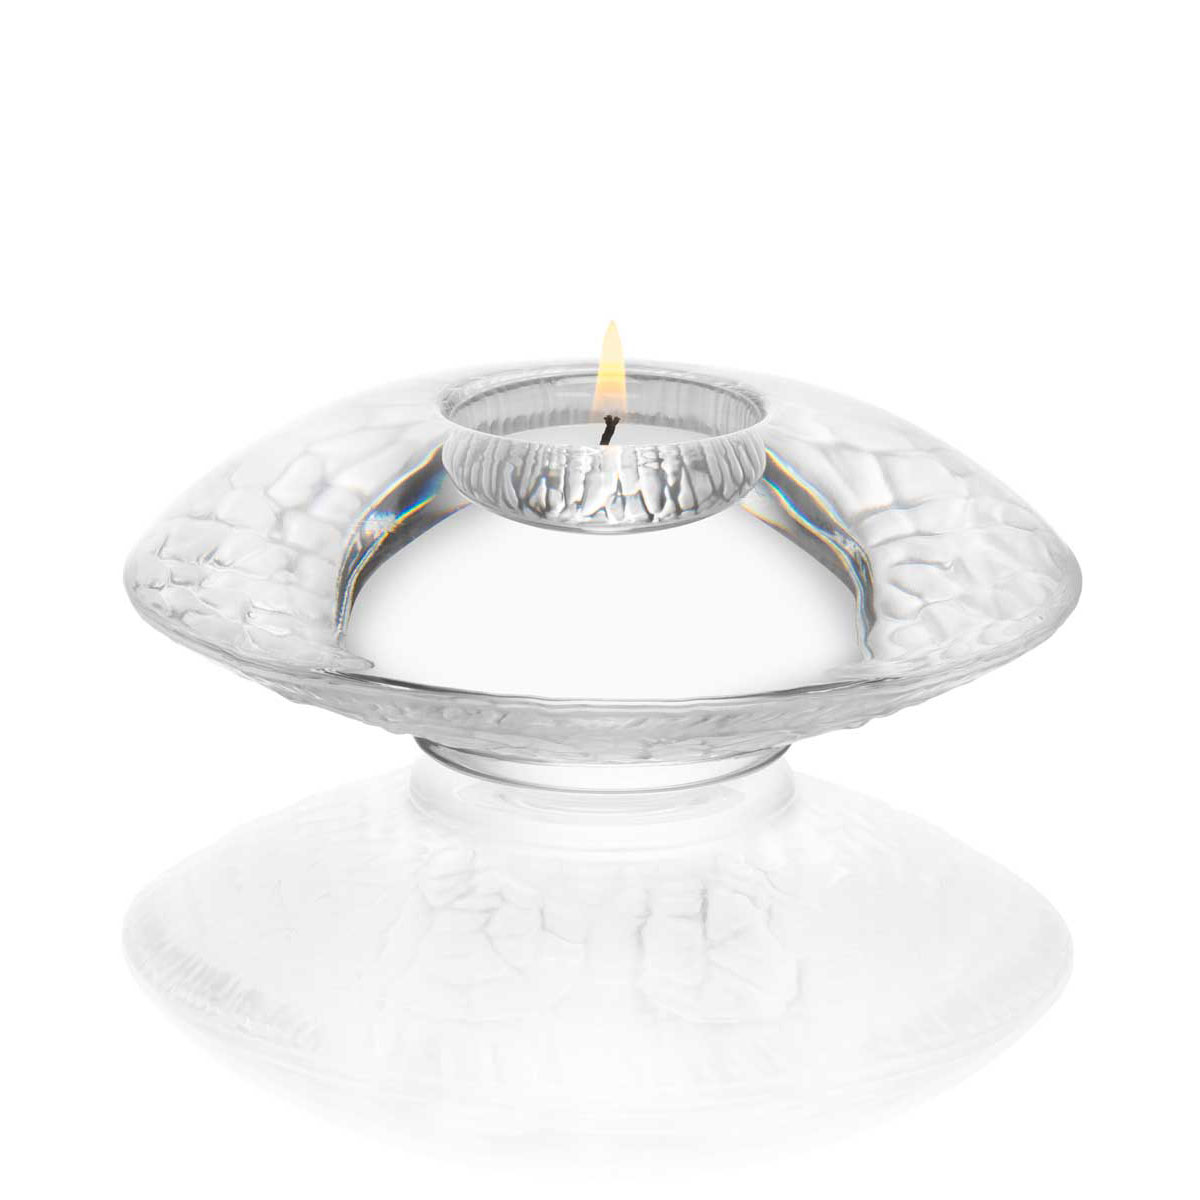 "Orrefors Crystal, Discus Frosted 5.5"" Votive, Single"